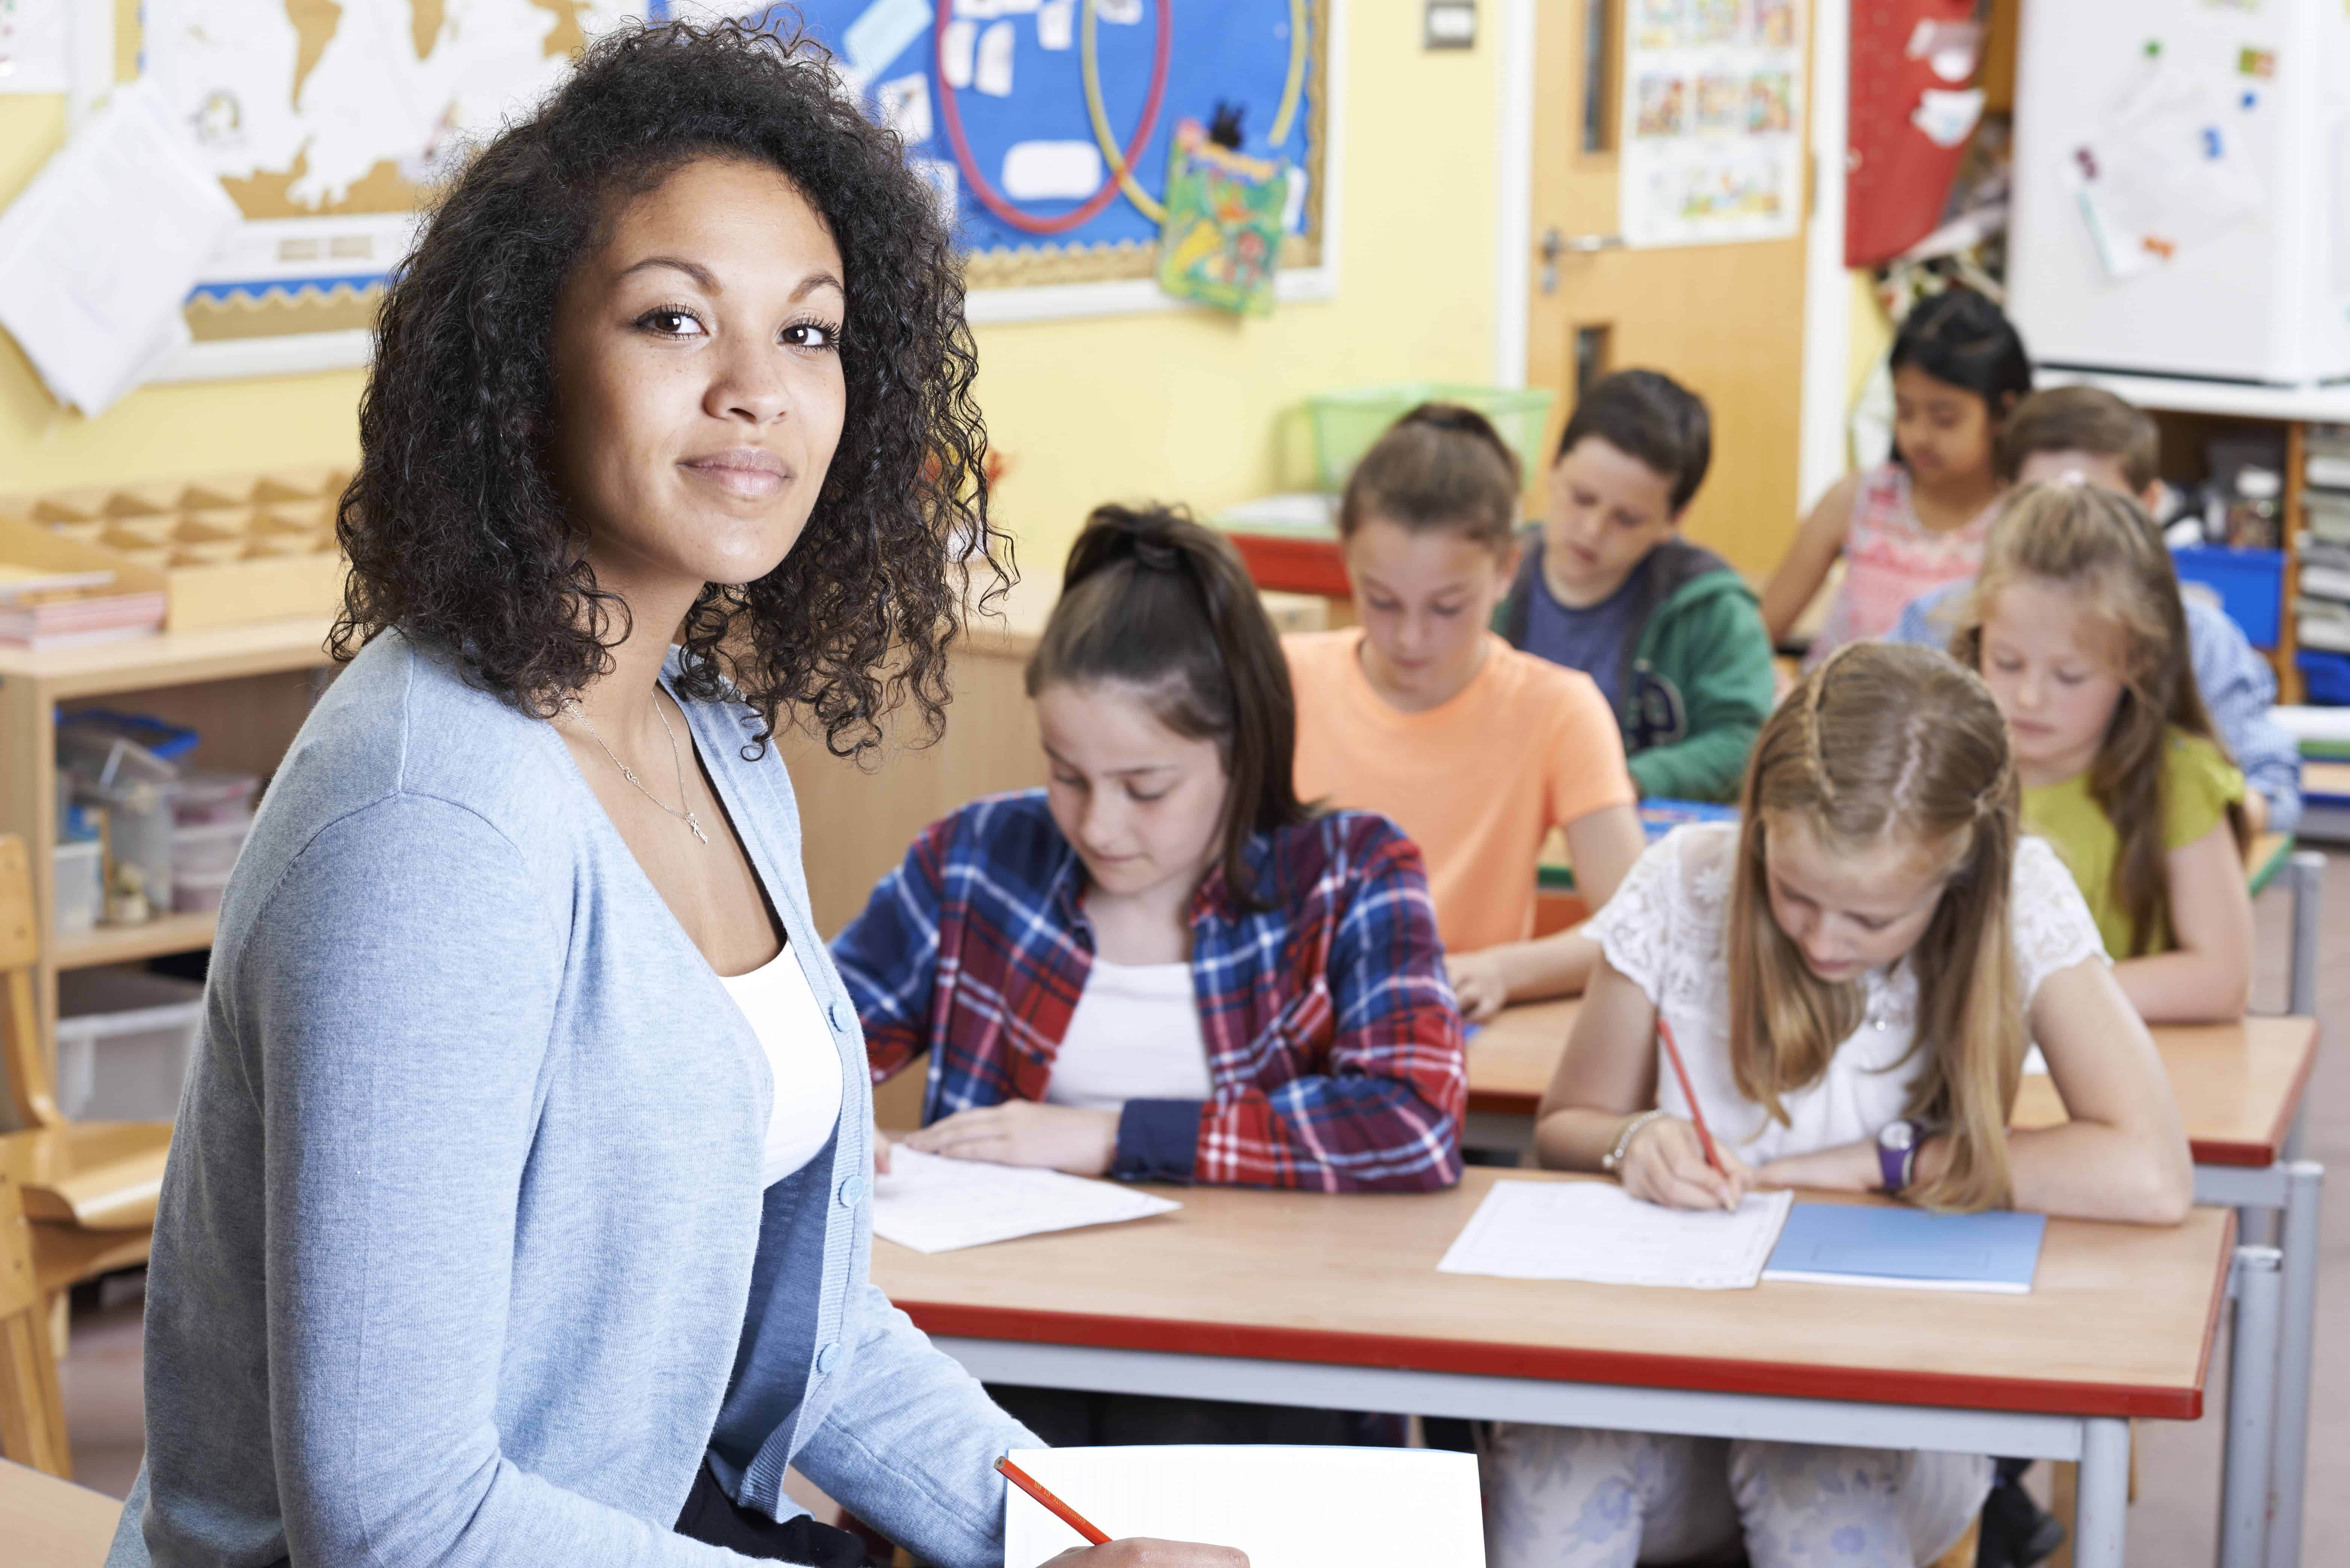 SELweb LE measures skills for success in school and life